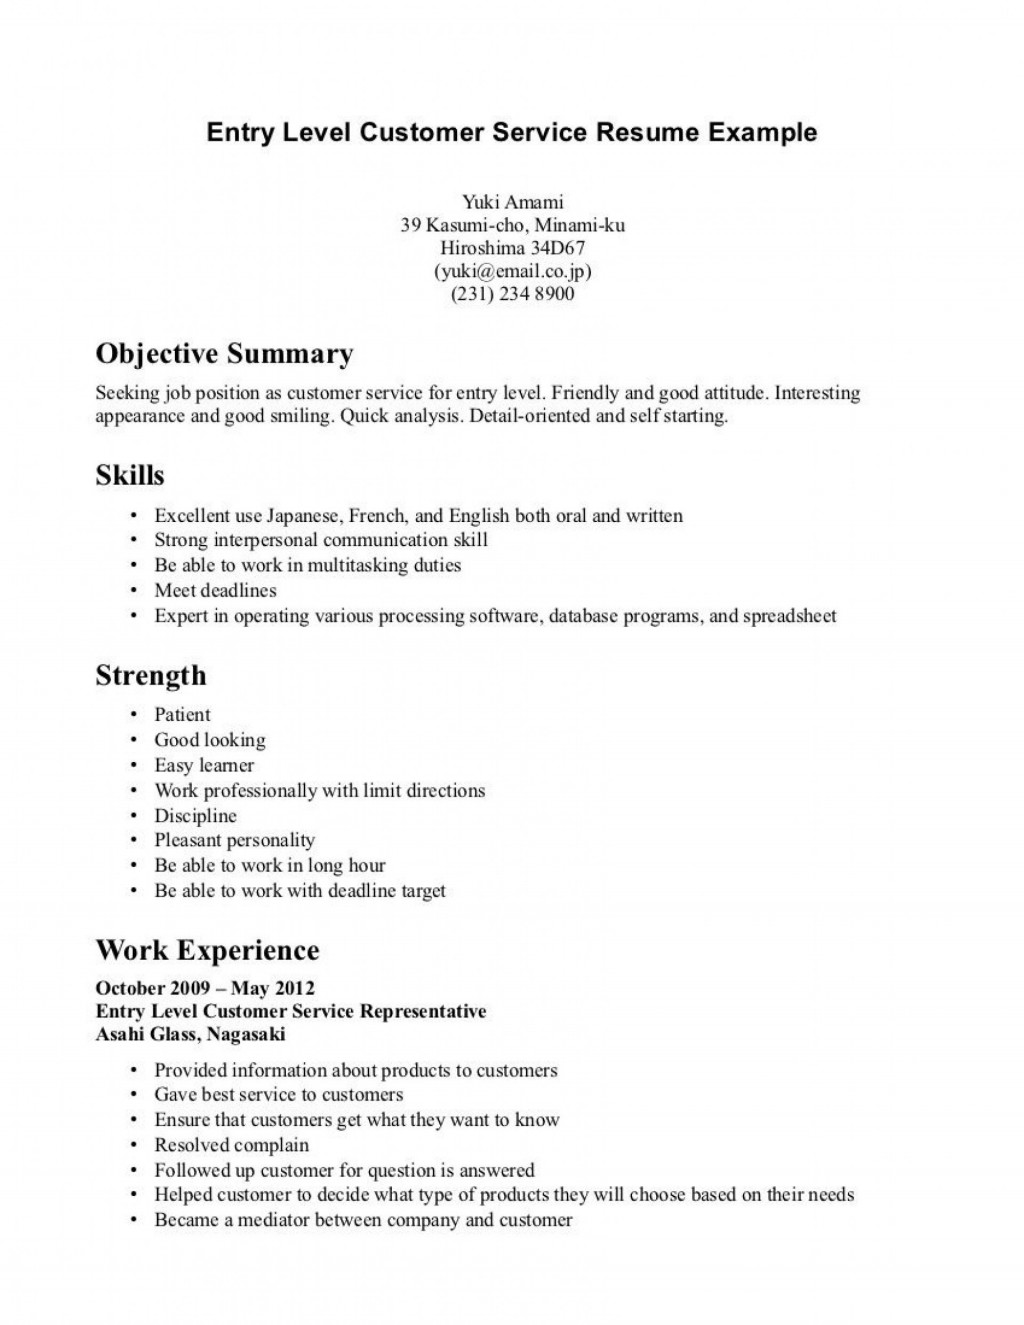 free entry level resume template addictionary marvelous photo another name for waitress Resume Entry Level Resume Template